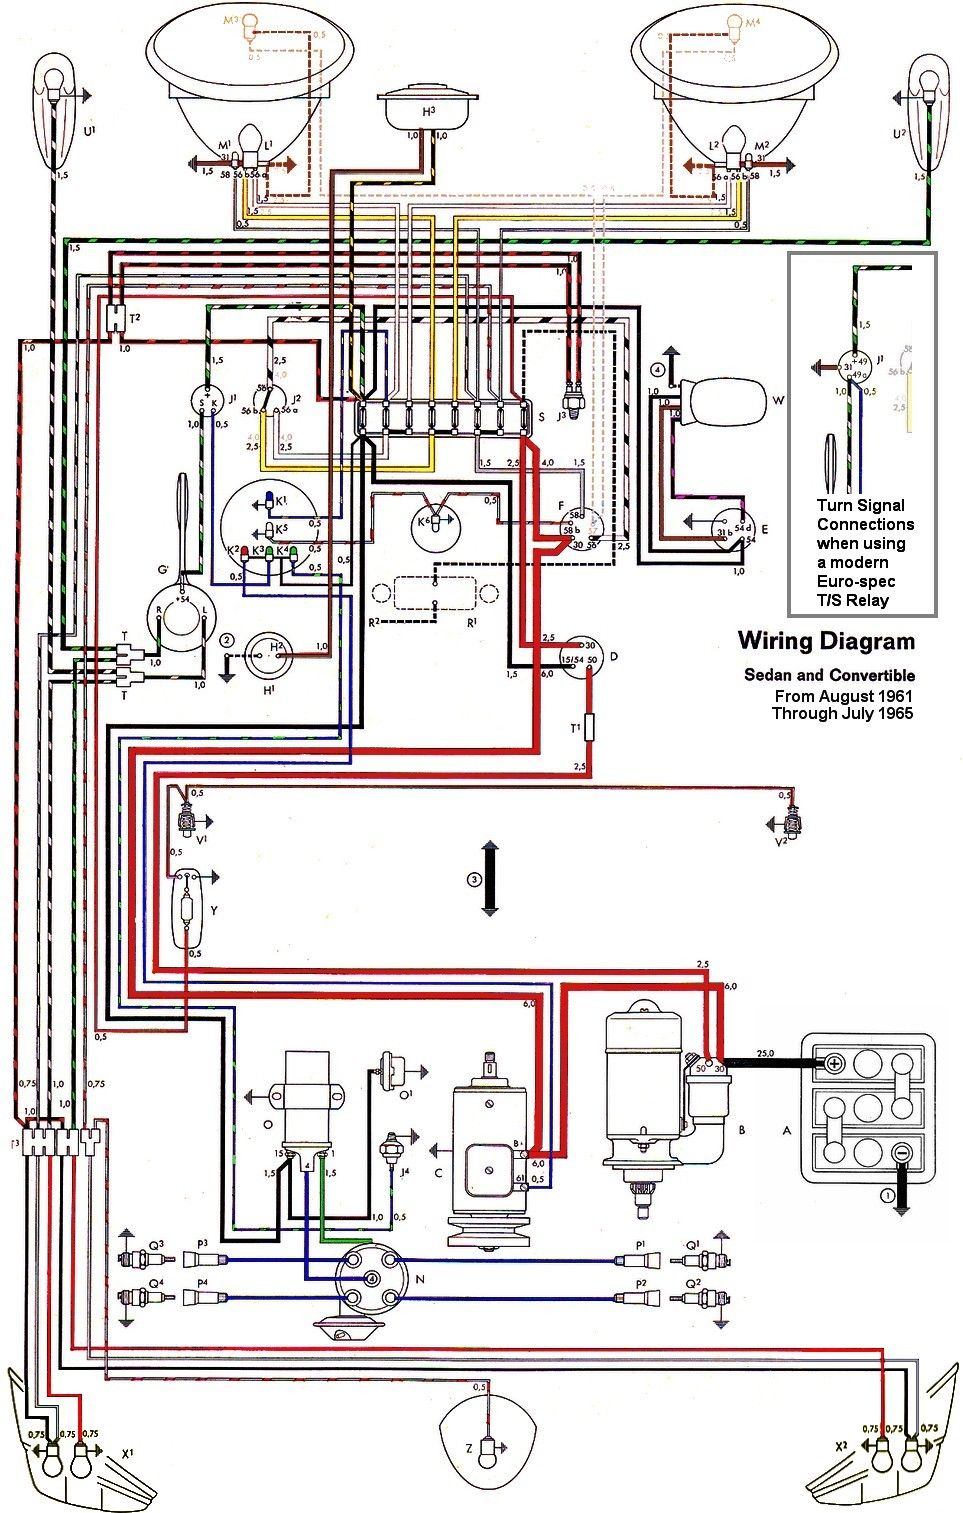 1996 volkswagen wiring diagram vw wiring diagram auto wiring diagrams  vw wiring diagram auto wiring diagrams